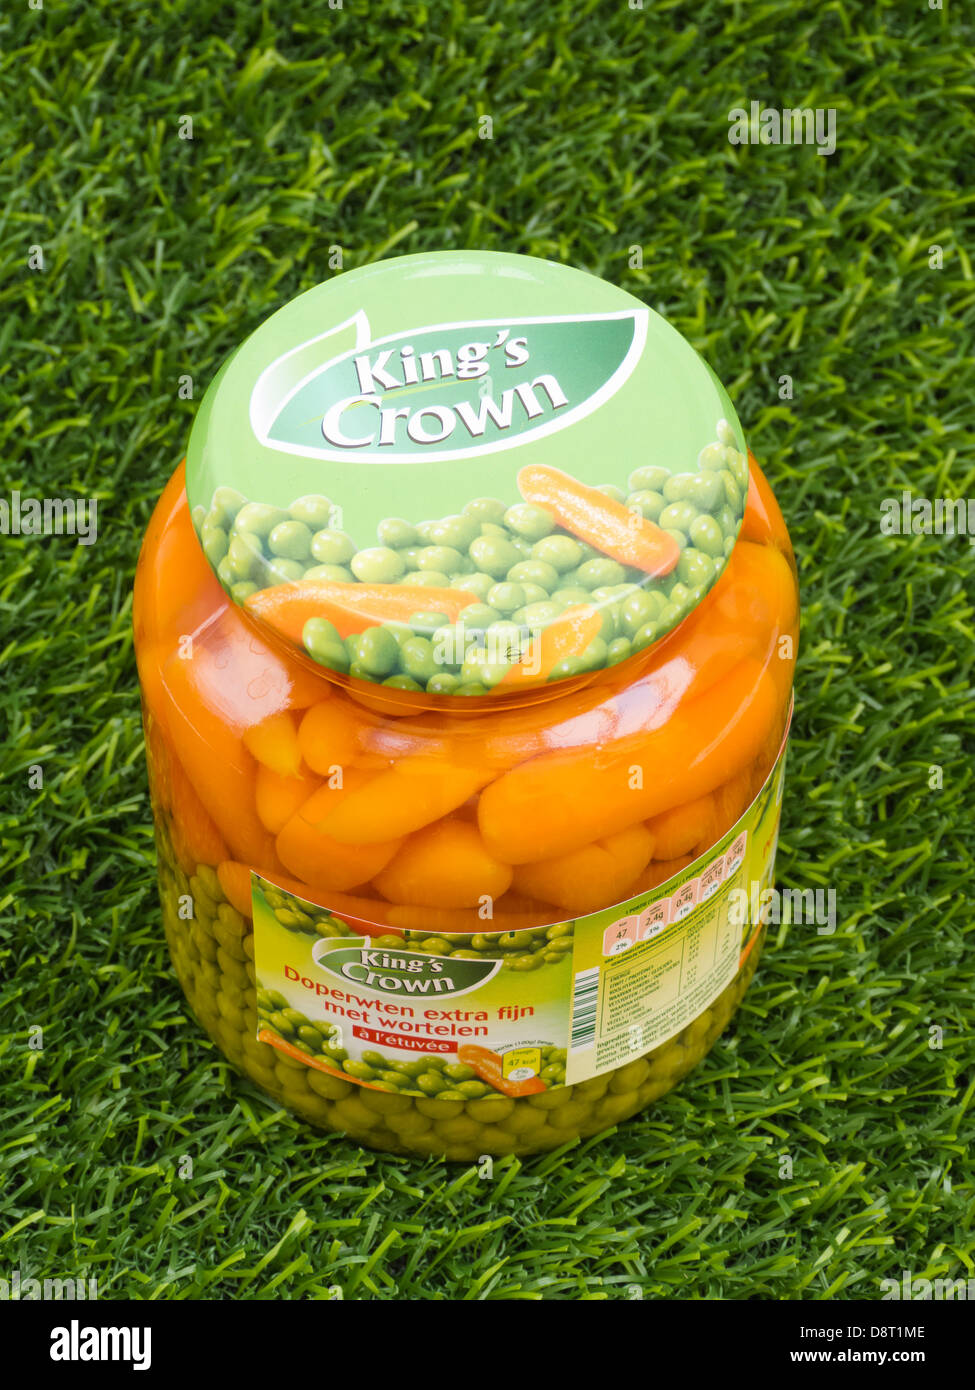 Kings Crown Peas and Carrots - Stock Image